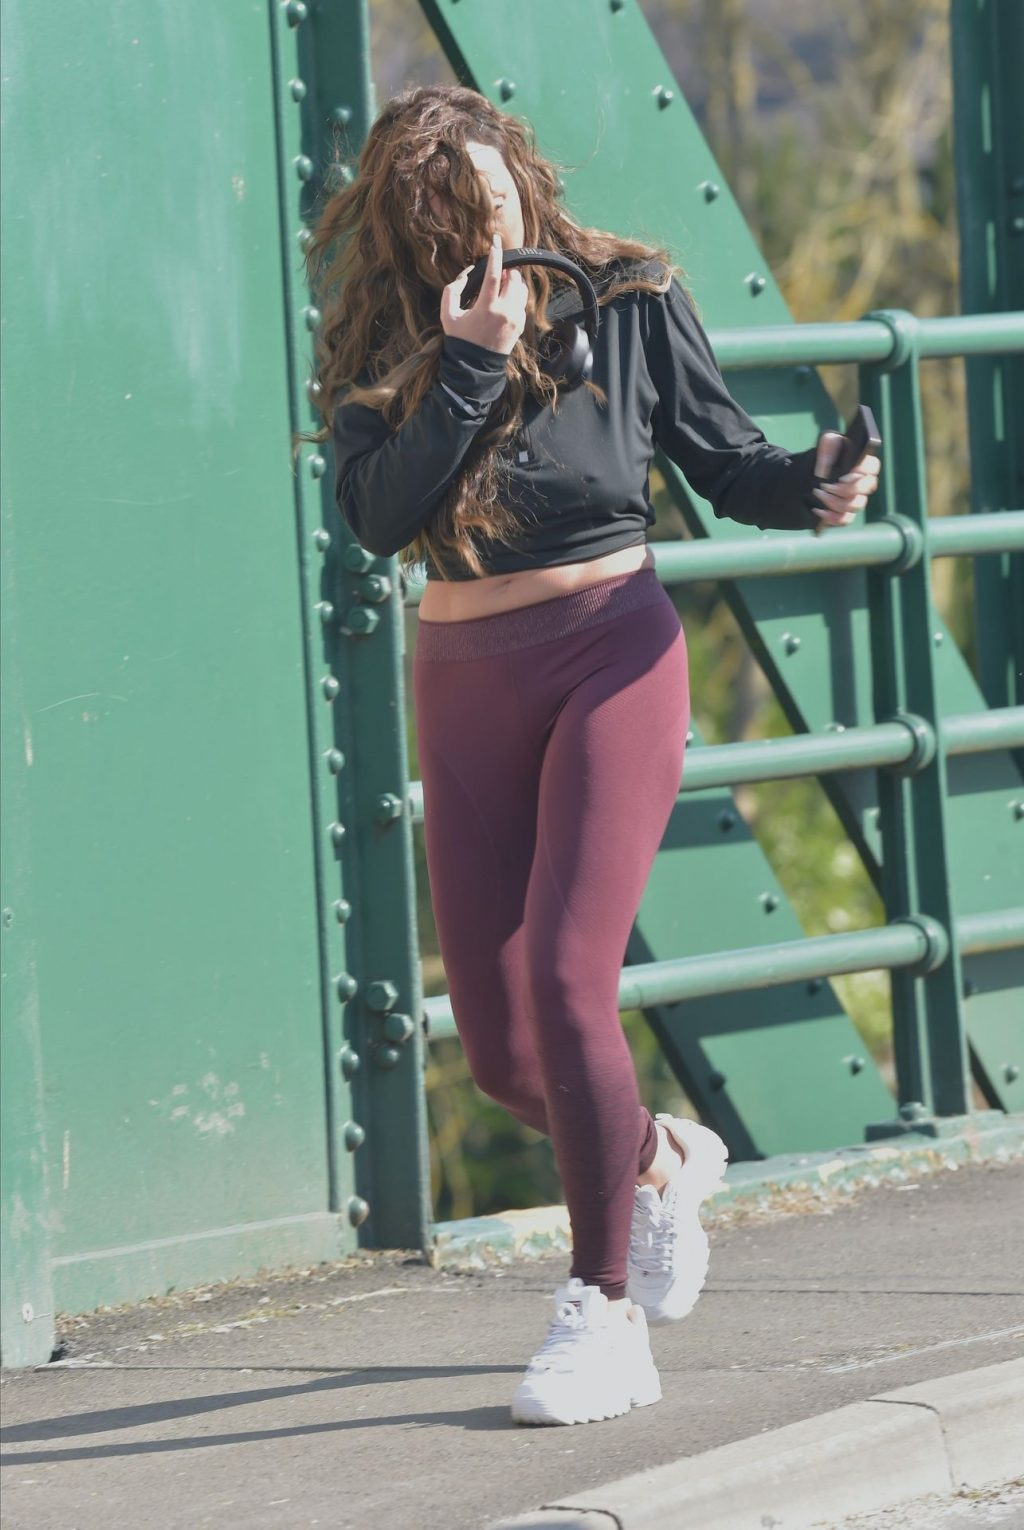 Charlotte Crosby Pictured While Jogging (43 Photos)